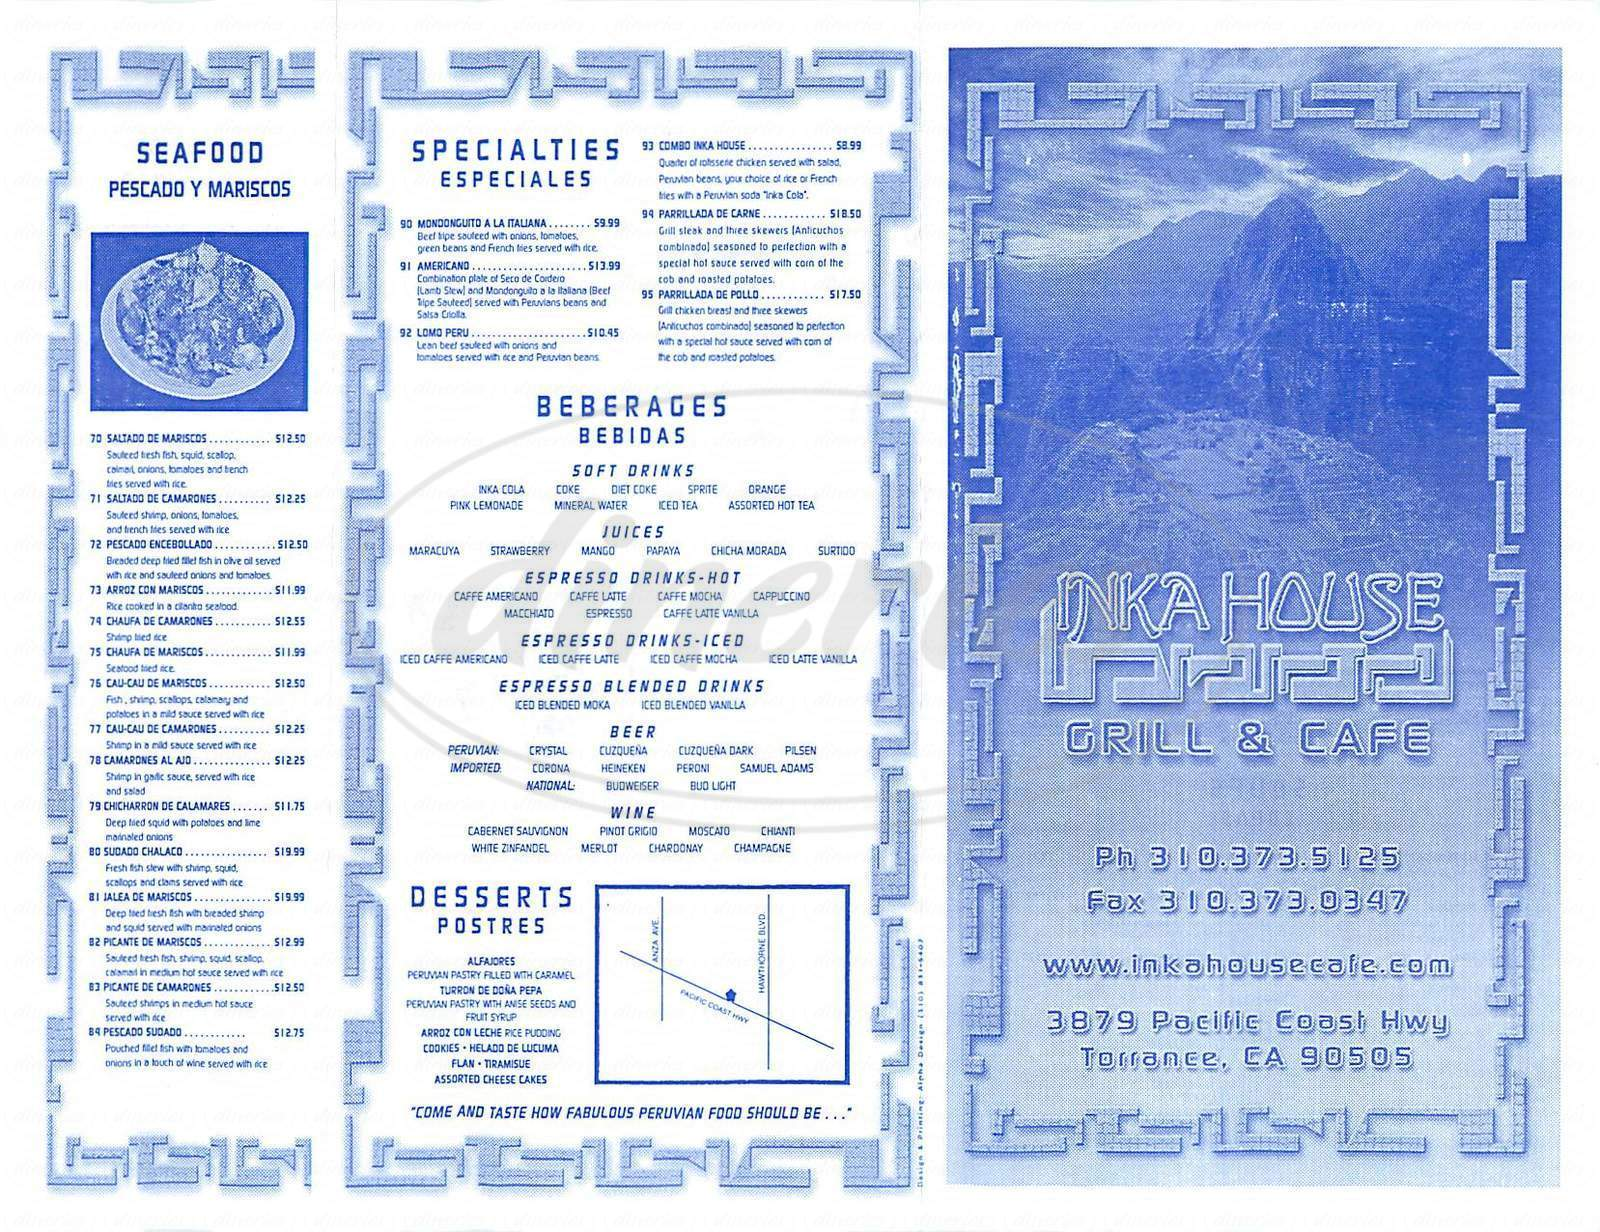 menu for Inka House Grill & Cafe